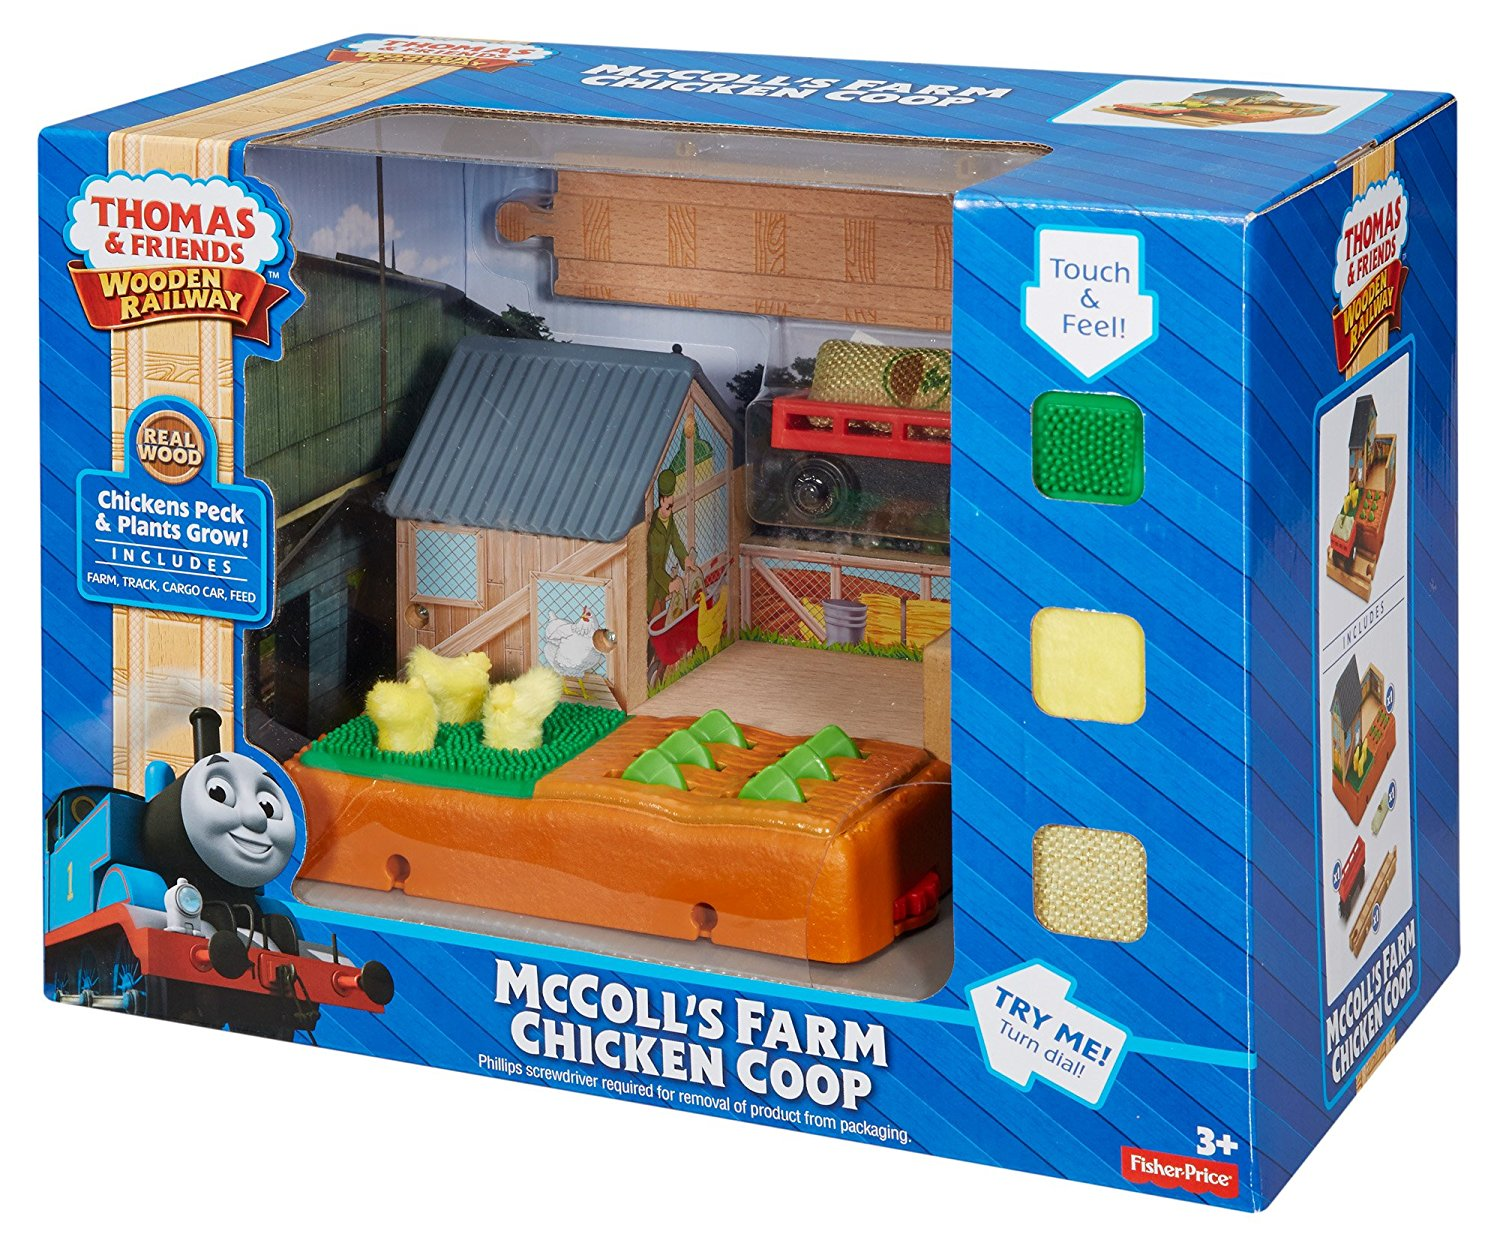 Fisher Price Thomas & Friends™ Wooden Railway McColl's Farm Chicken Coop DFX05